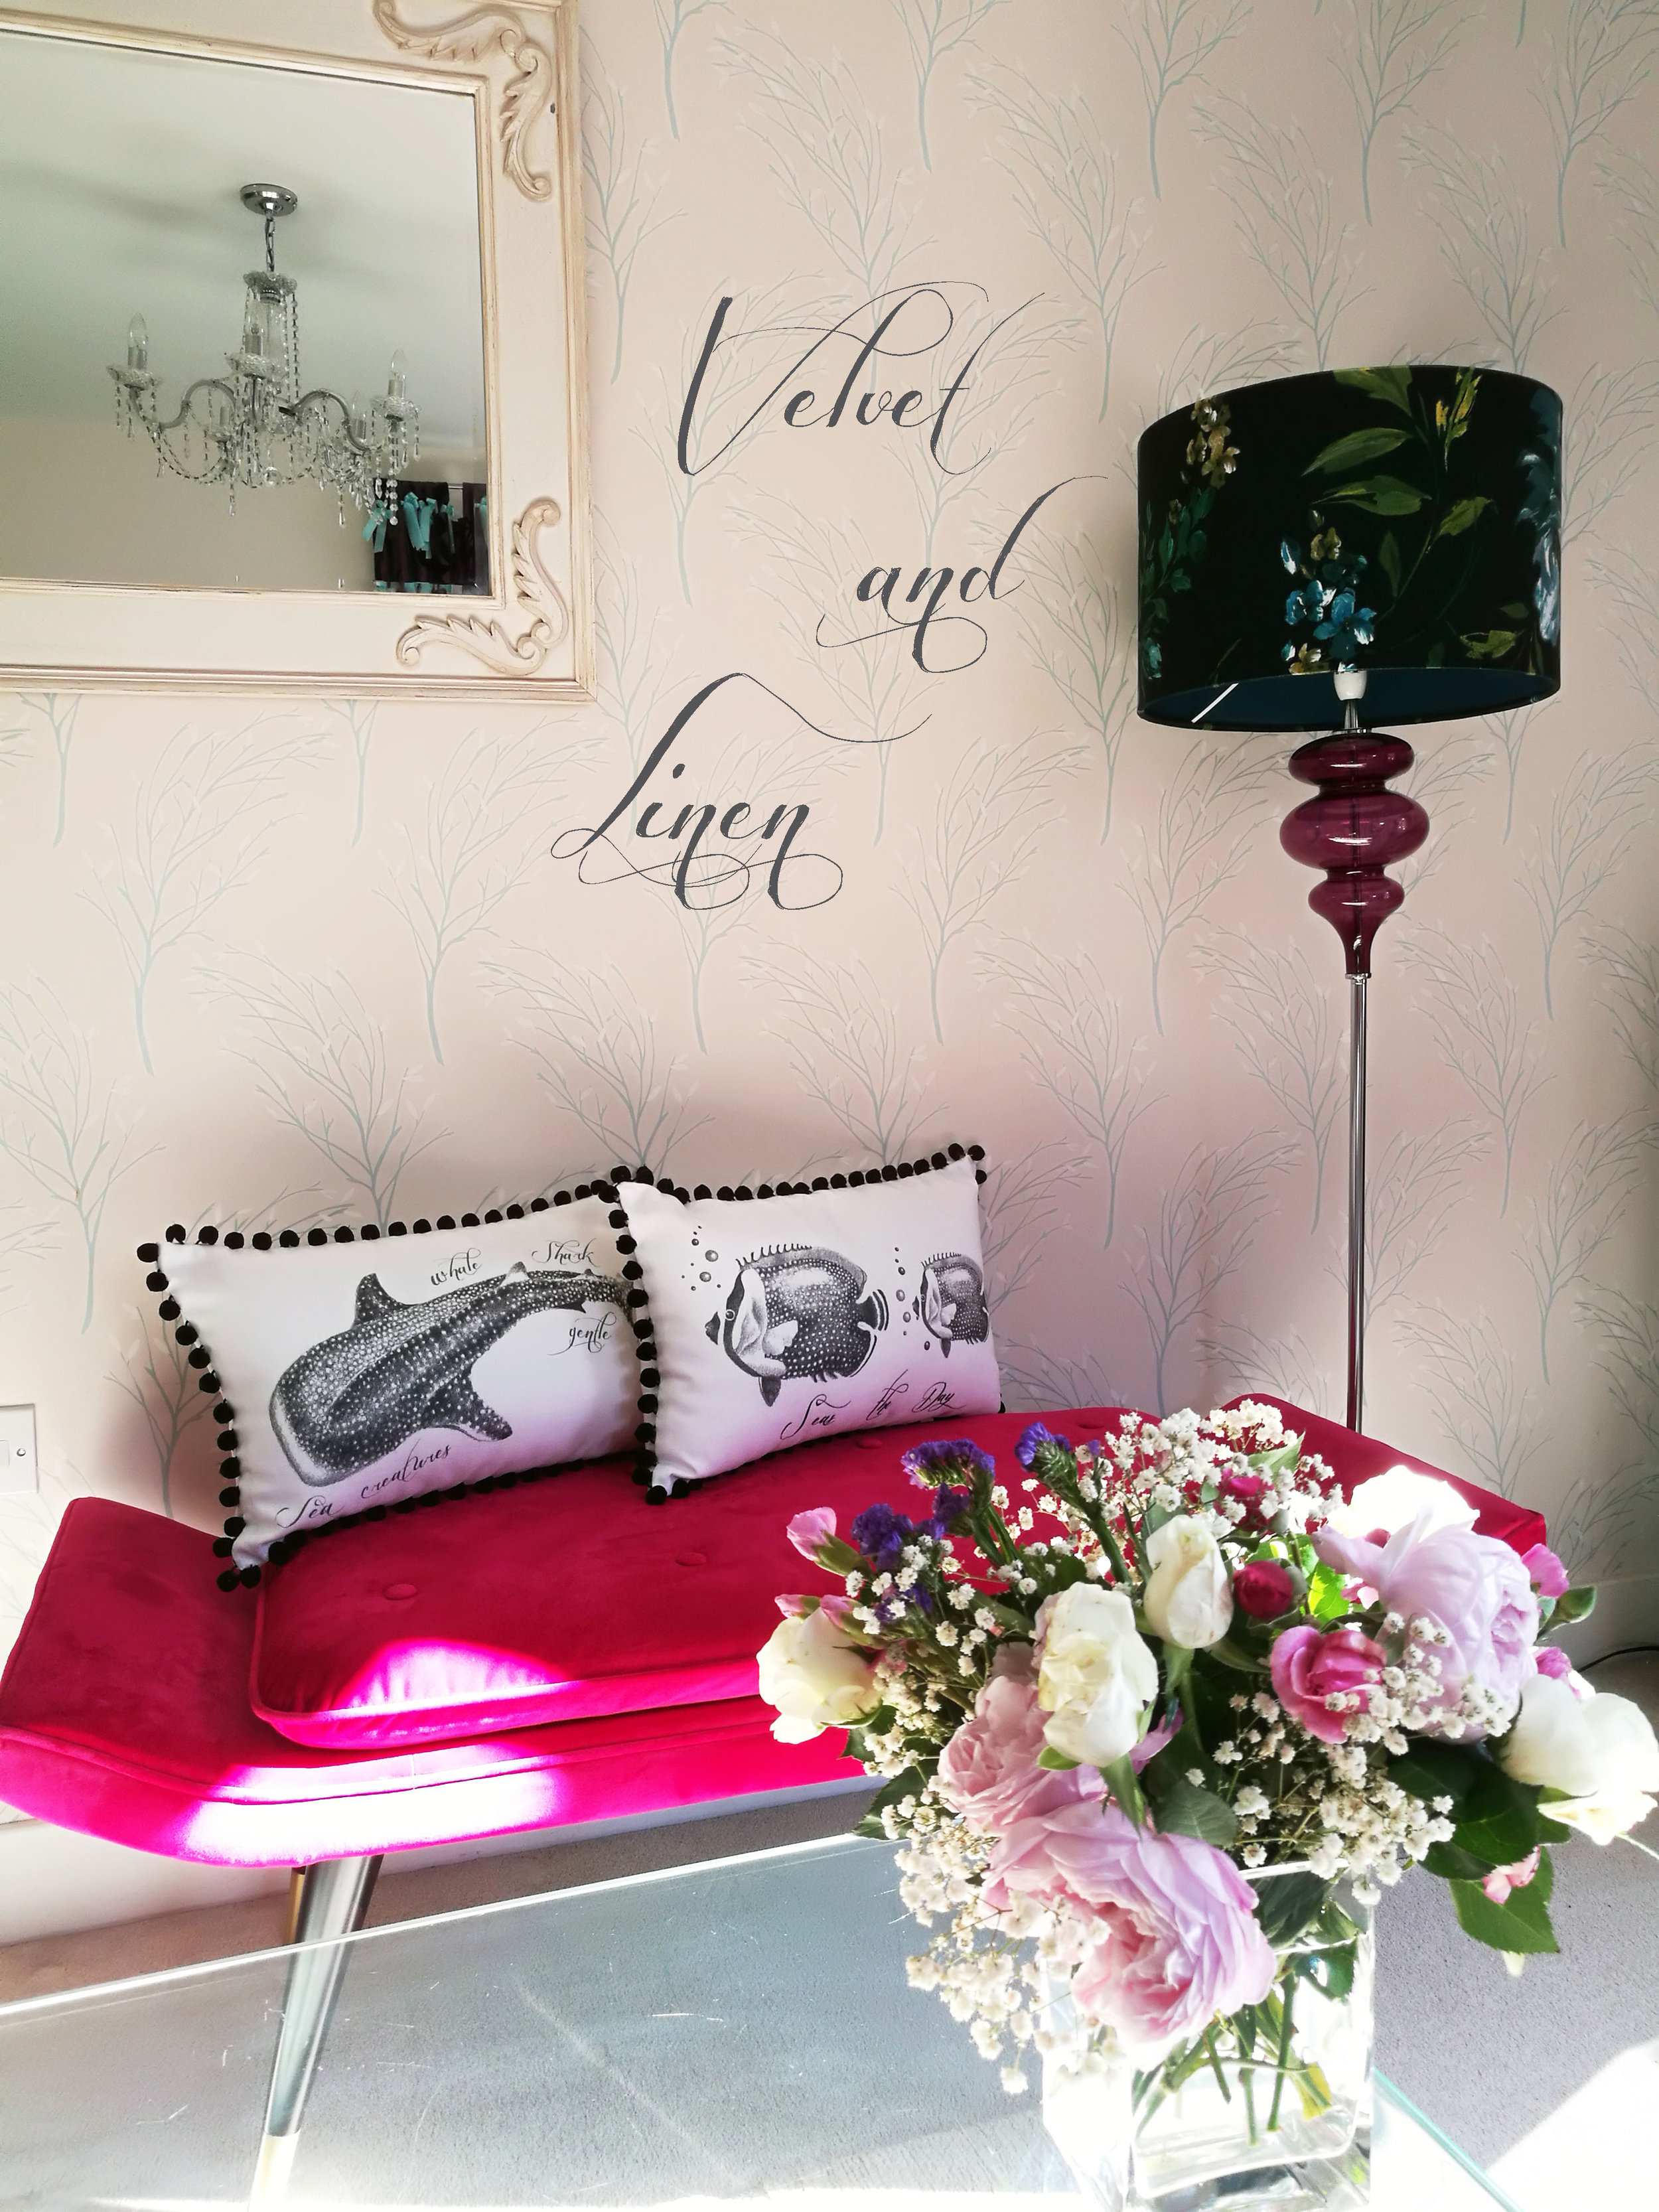 ooh, look at the pink chaise lounge. just can't get enough of looking at it! Recently purchased from Home Sense, together with the sumptuous velvet lamp shade. The perfect interior backdrop to show off my bespoke monochrome cushions. I'll be adding more designs to the store very soon.